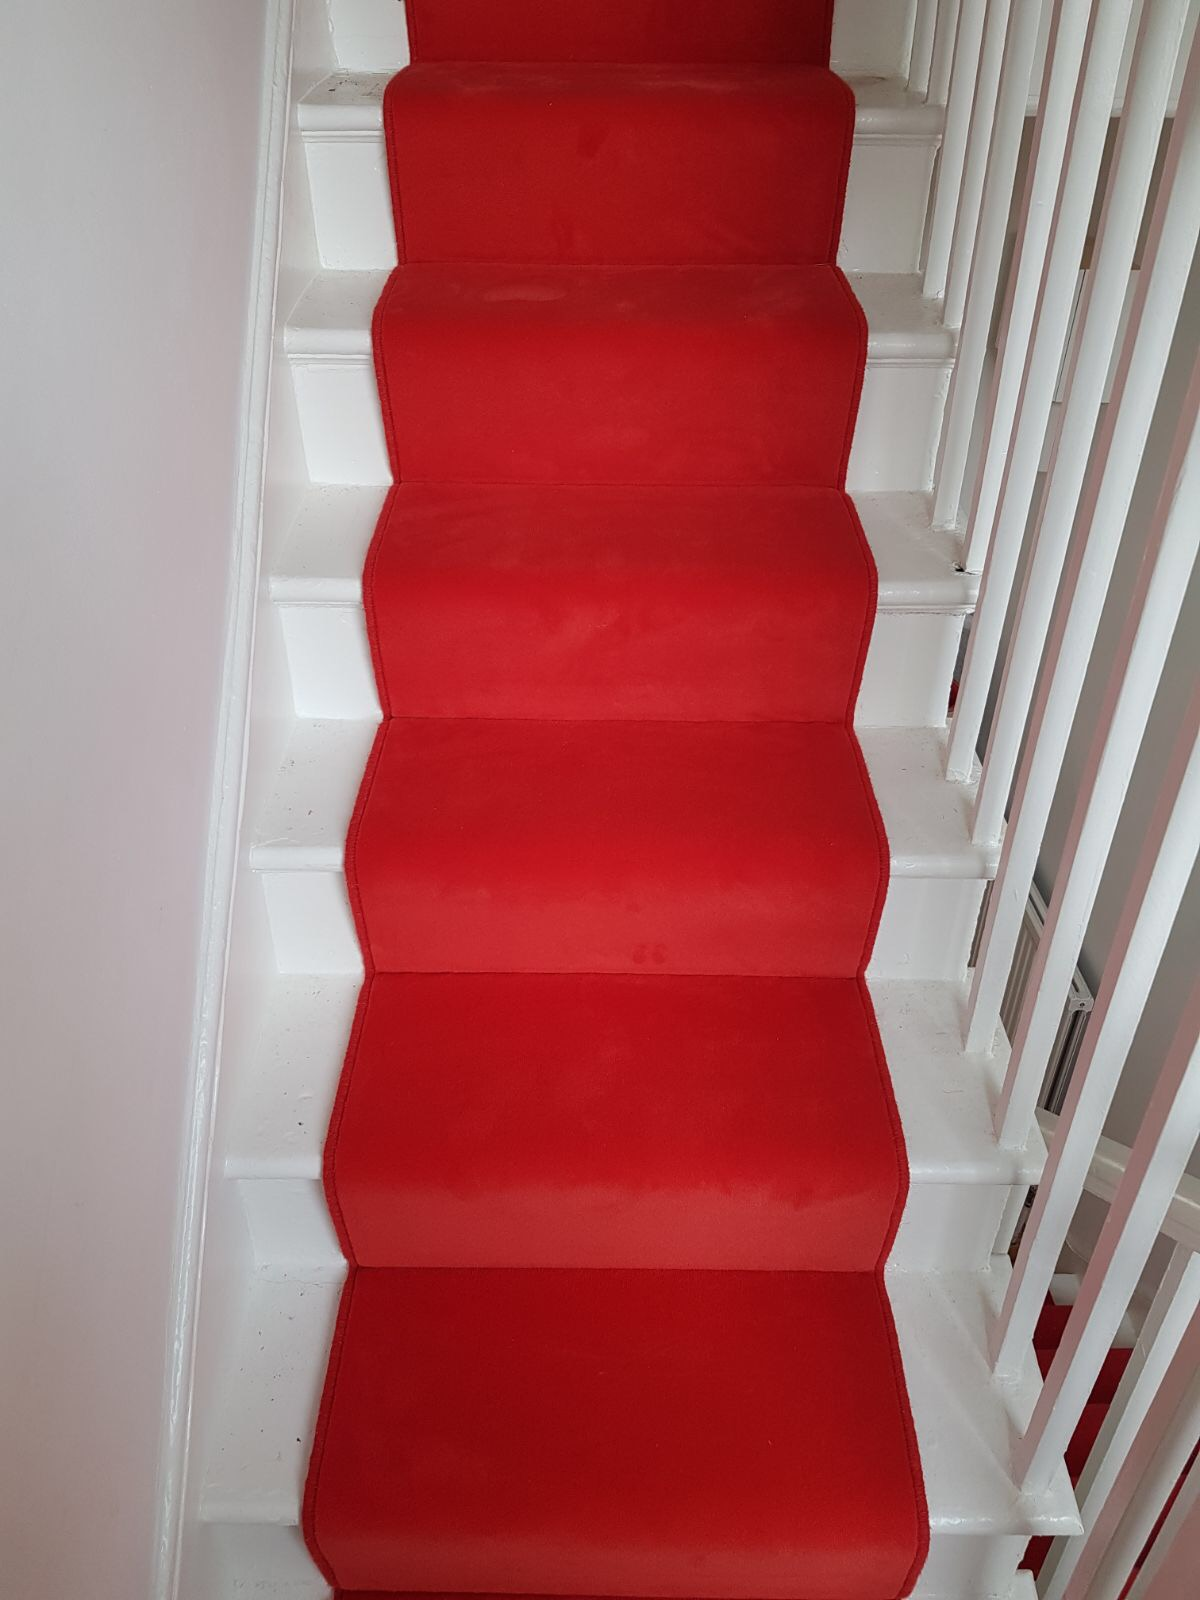 PORTFOLIO - RED STAIR RUNNER STAIRCASE CARPET (1)